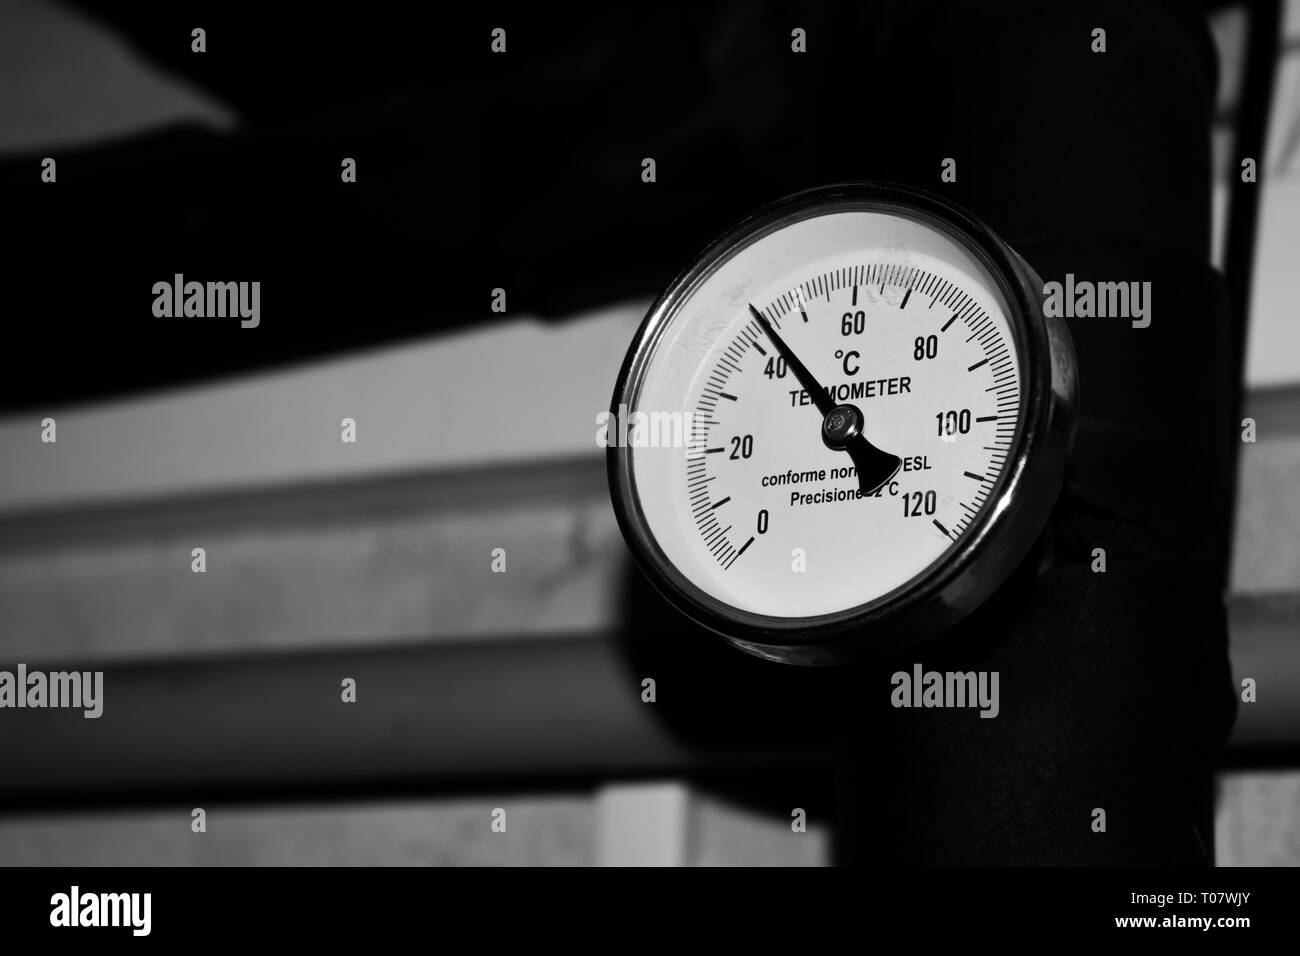 Pressure spring dial thermometer metering temperature of water in heating pipes, black and whites - Stock Image